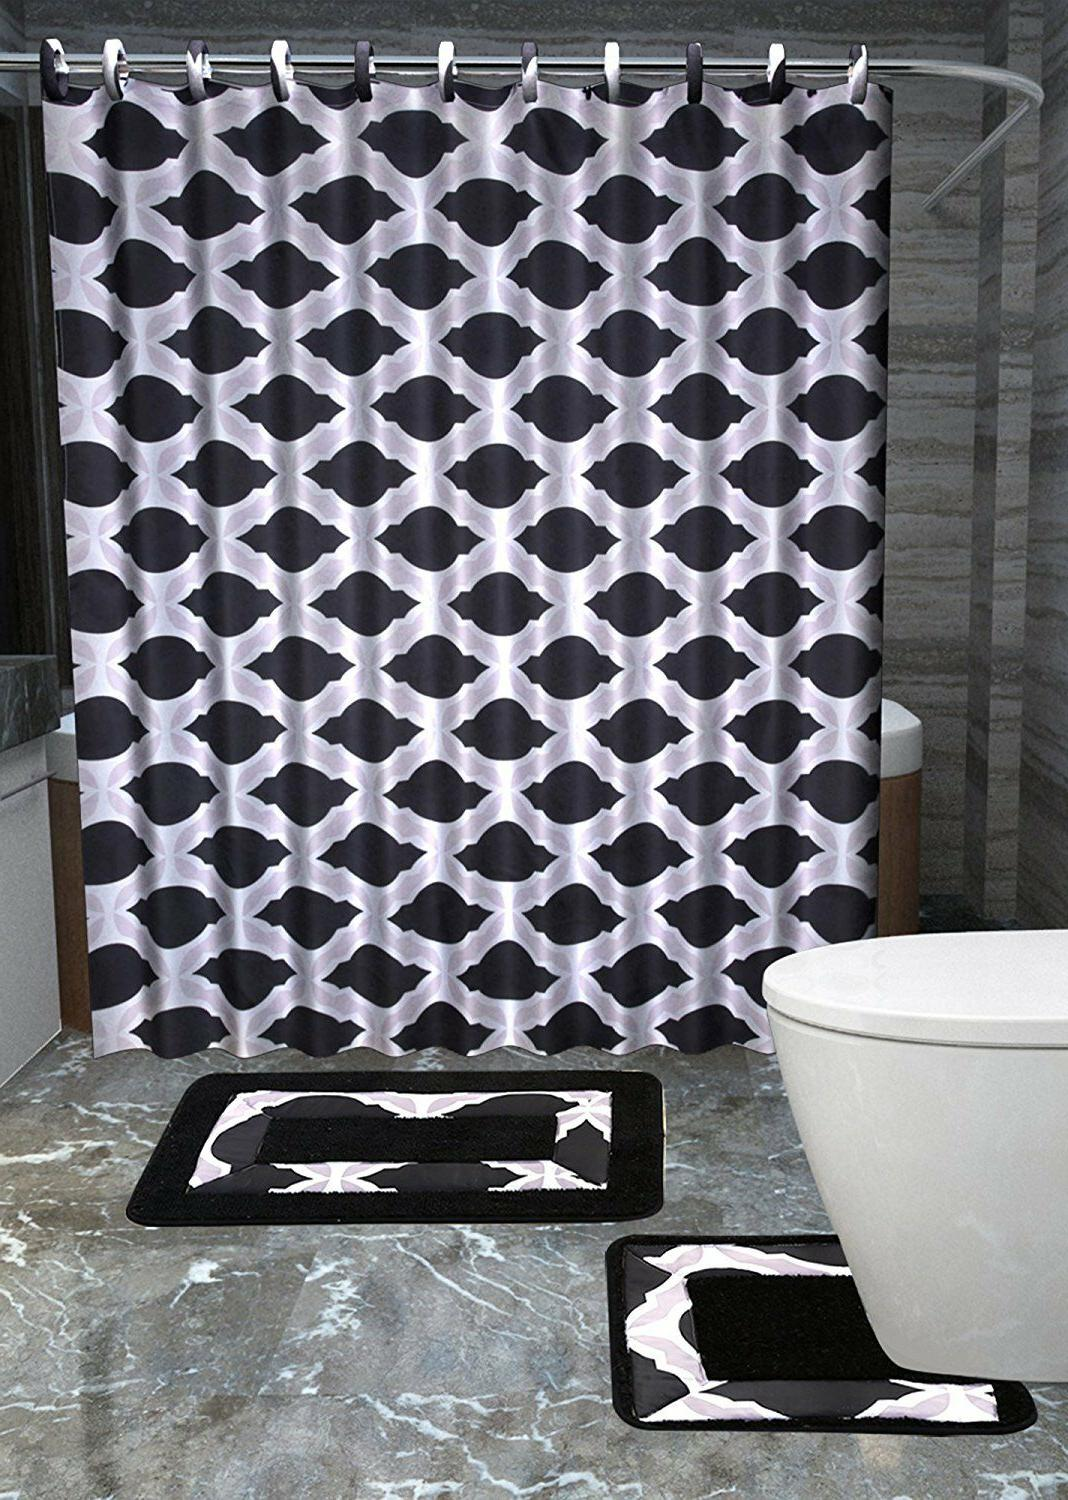 Merlyn 15-Piece Bathroom Accessories Set Rugs Shower Curtain